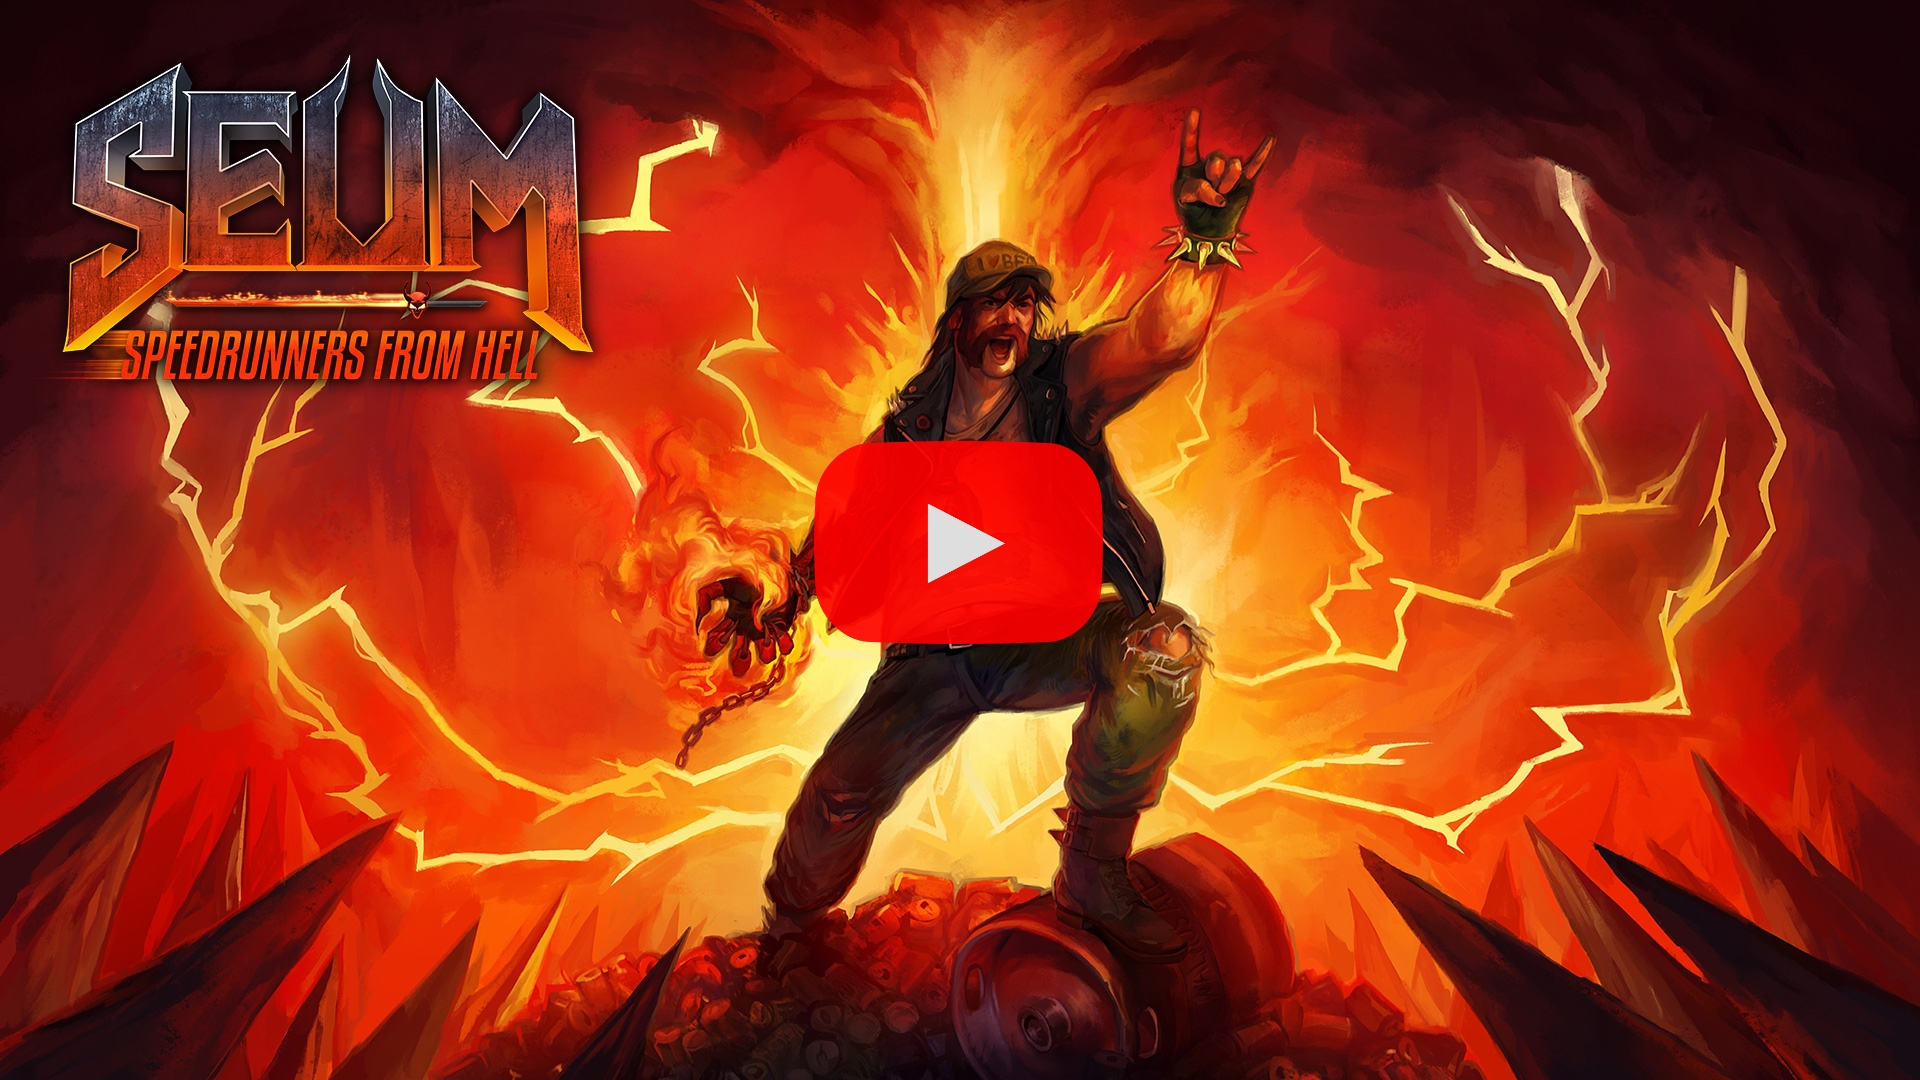 SEUM: Speedrunners from Hell - Release Trailer